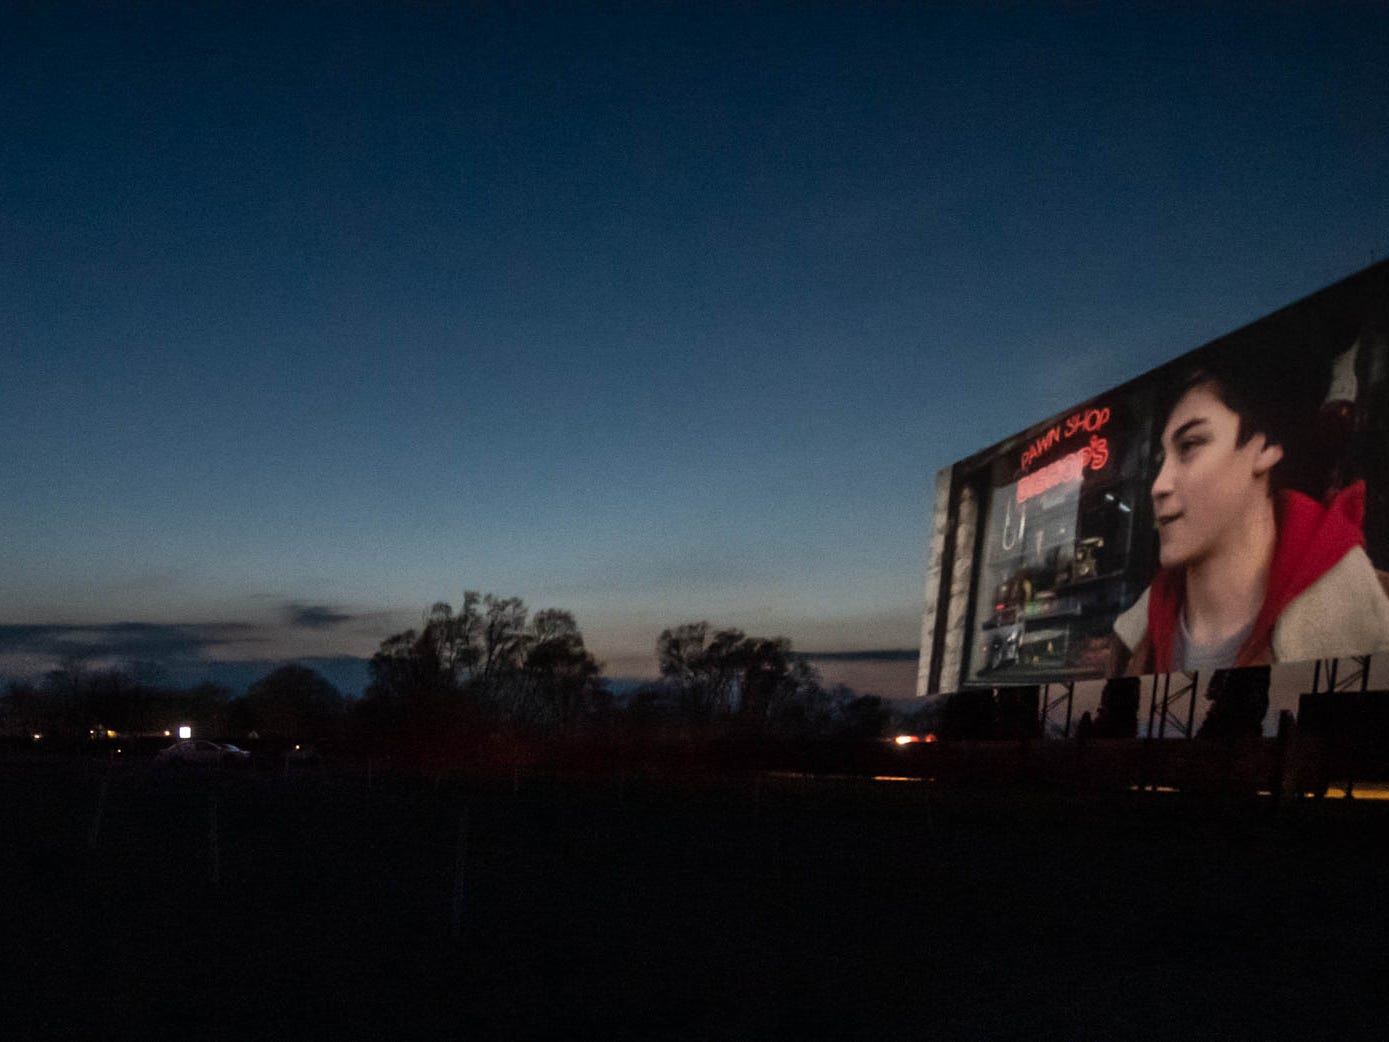 """Shazzam"" plays on one of the screens at The Capri Drive-In in Coldwater on Friday, April 5, 2019."